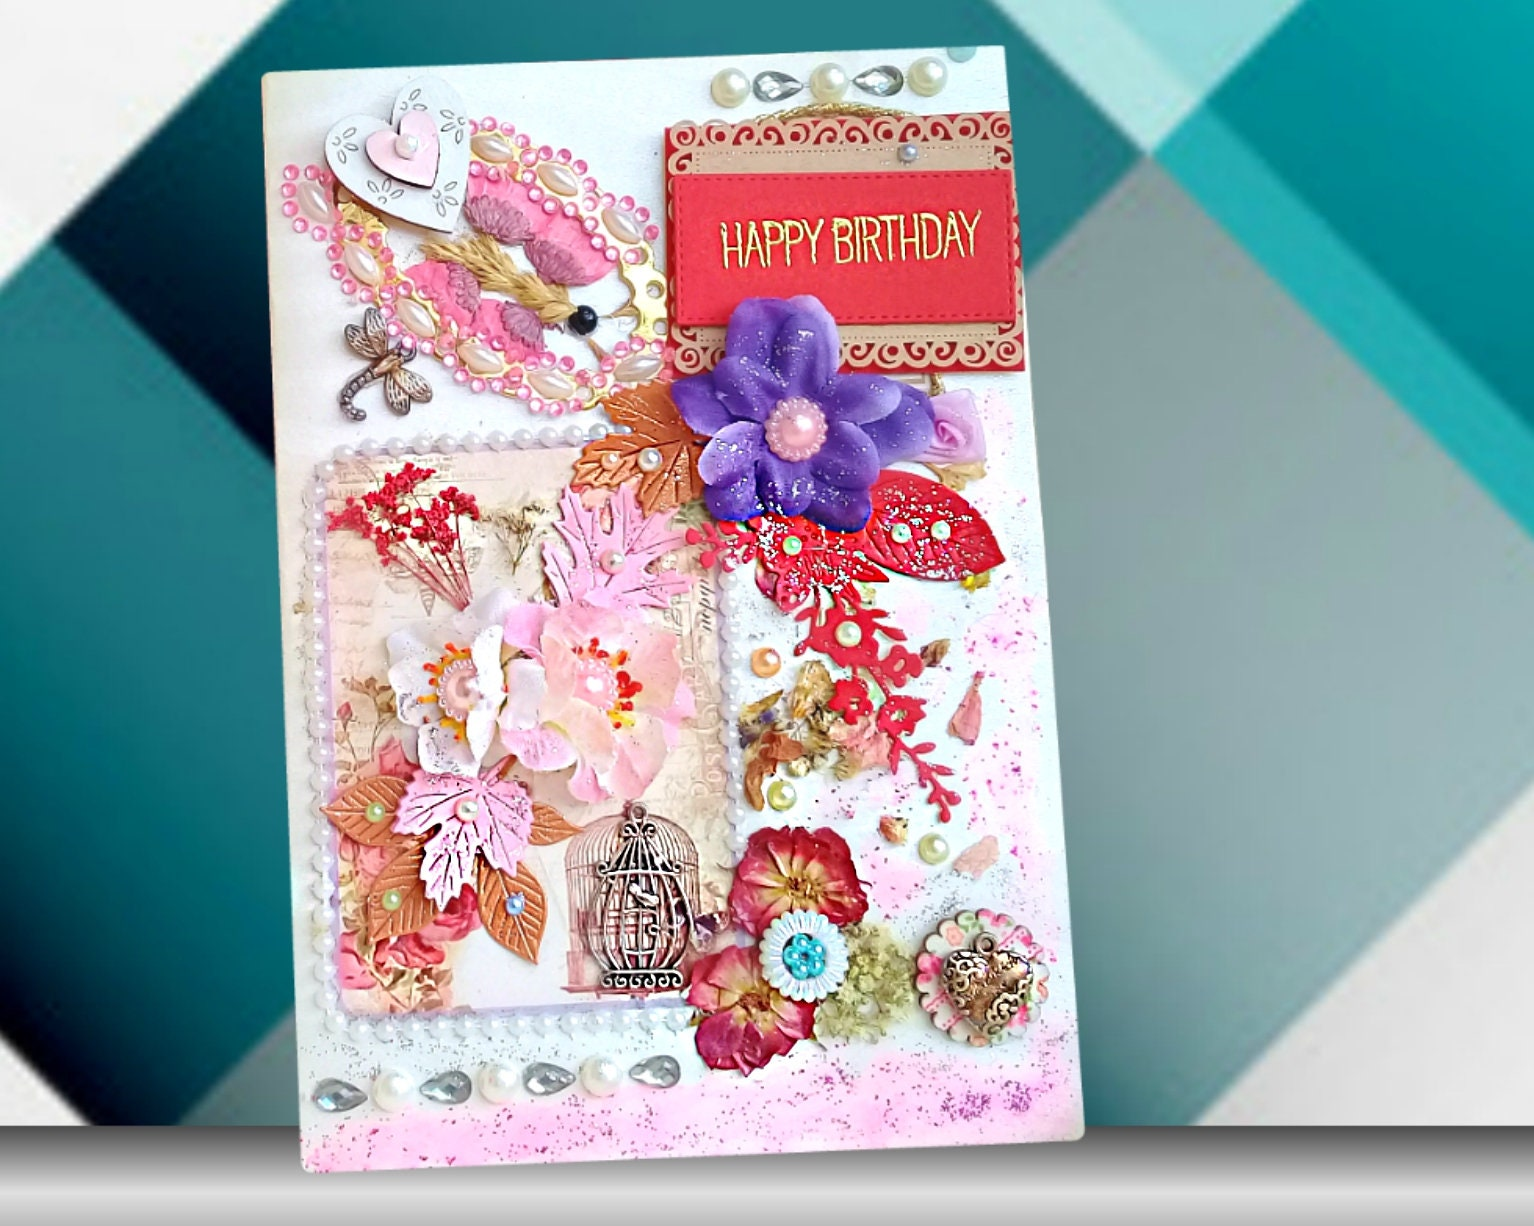 Mum Birthday Card Best Friend Birhday Cards Wife Daughter In Law Fiance Gift Dried Flowers For Family